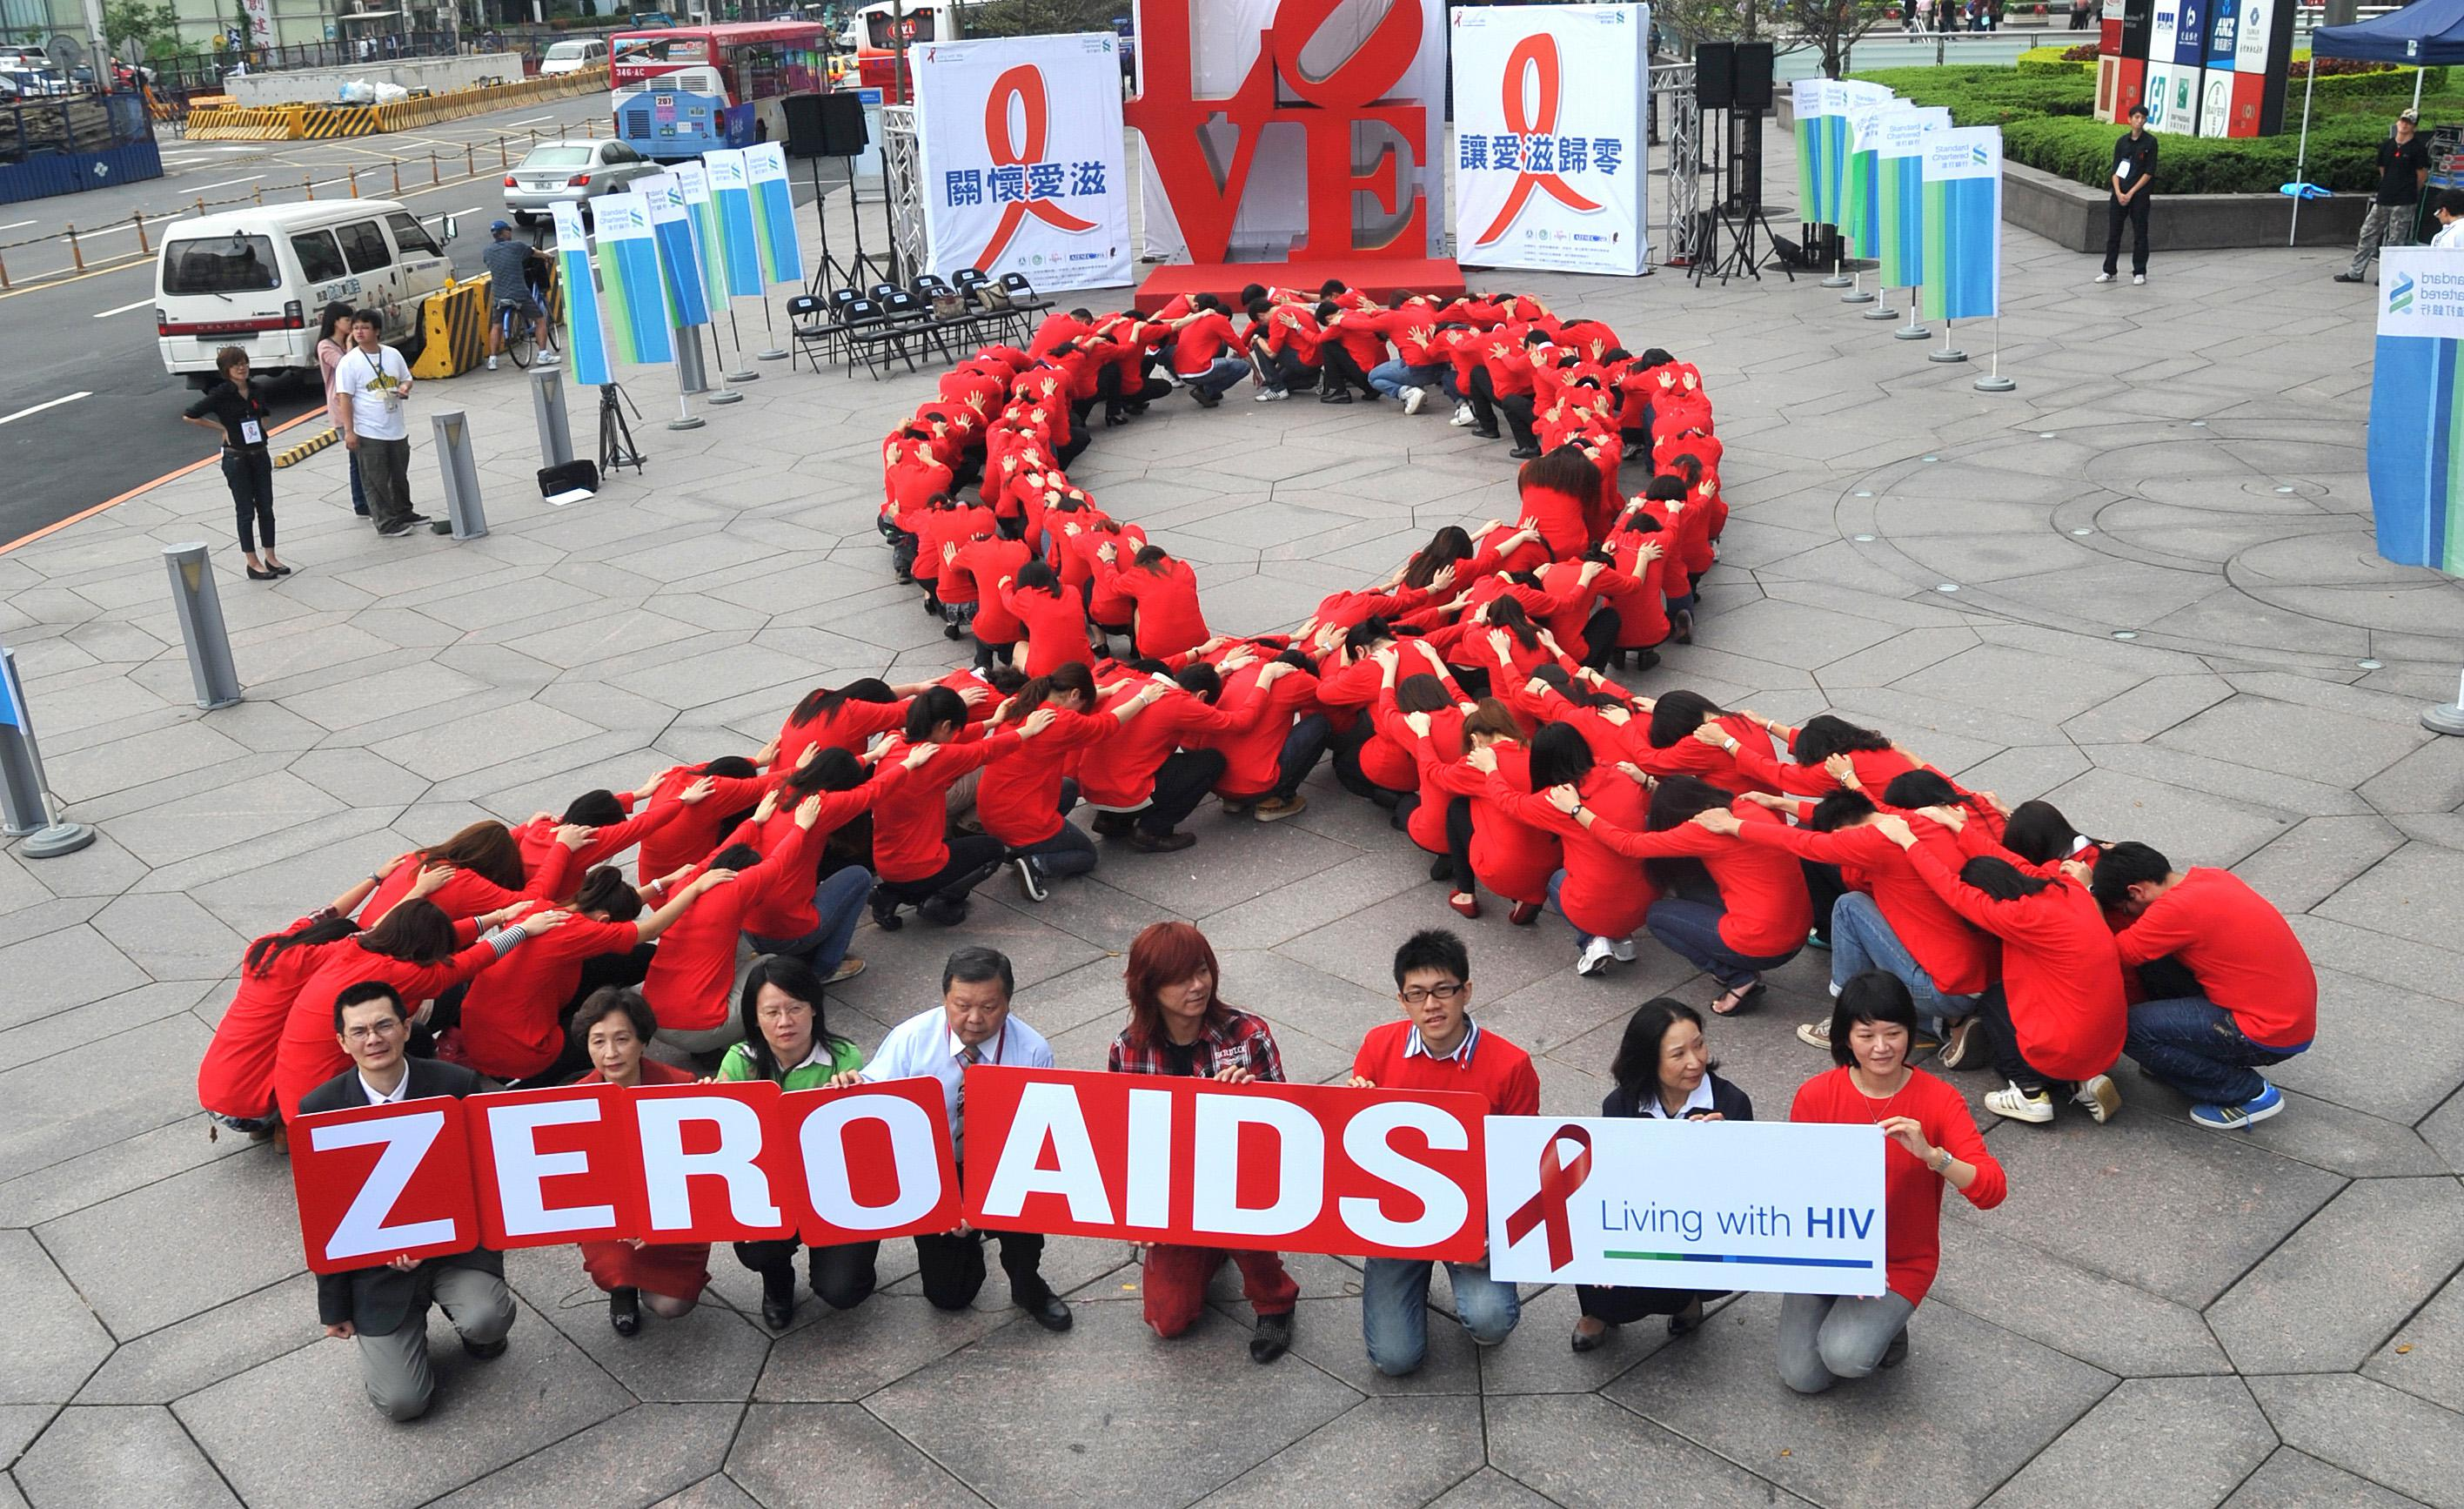 County shares HIV strategy on World AIDS Day   Lake